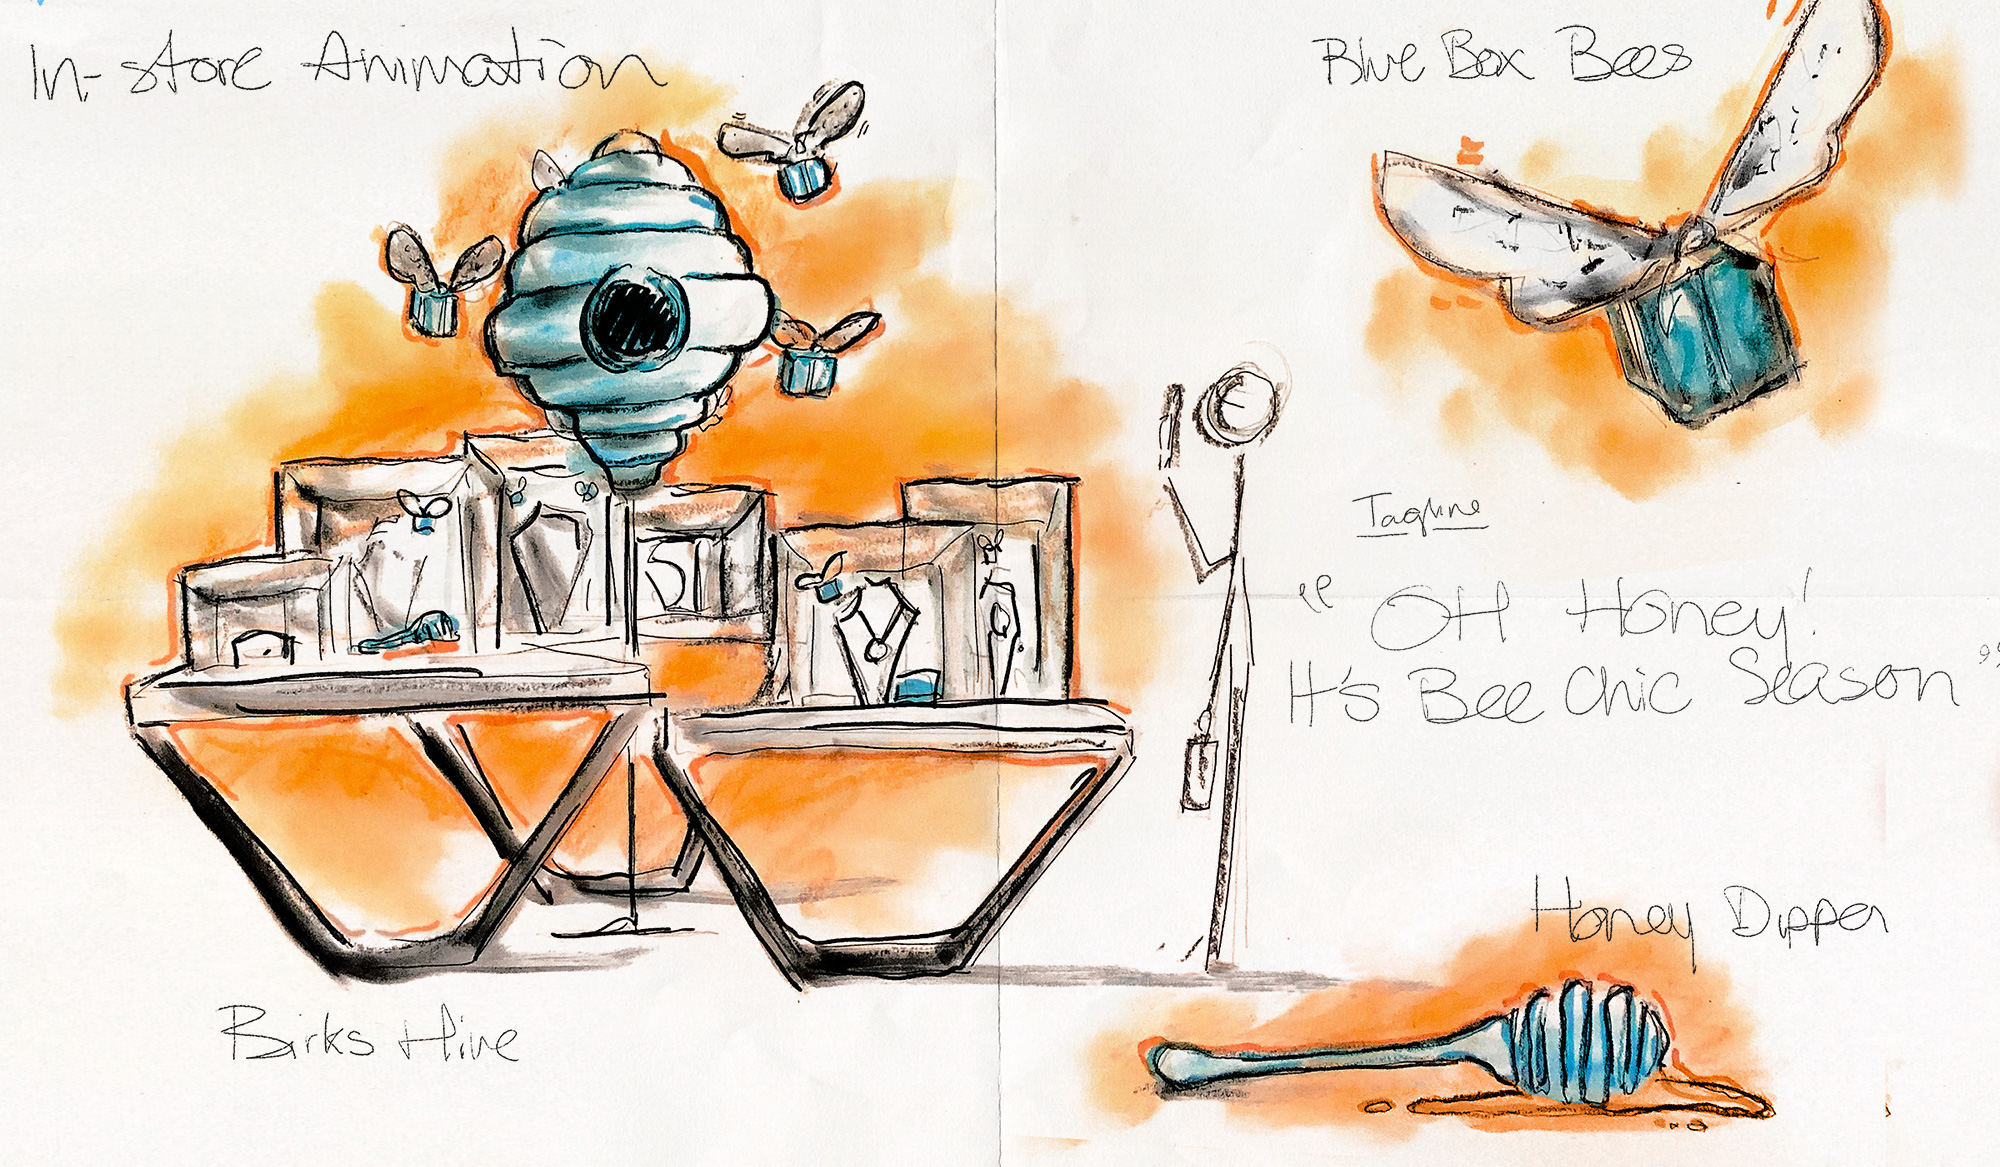 Concept sketch for in-store animation